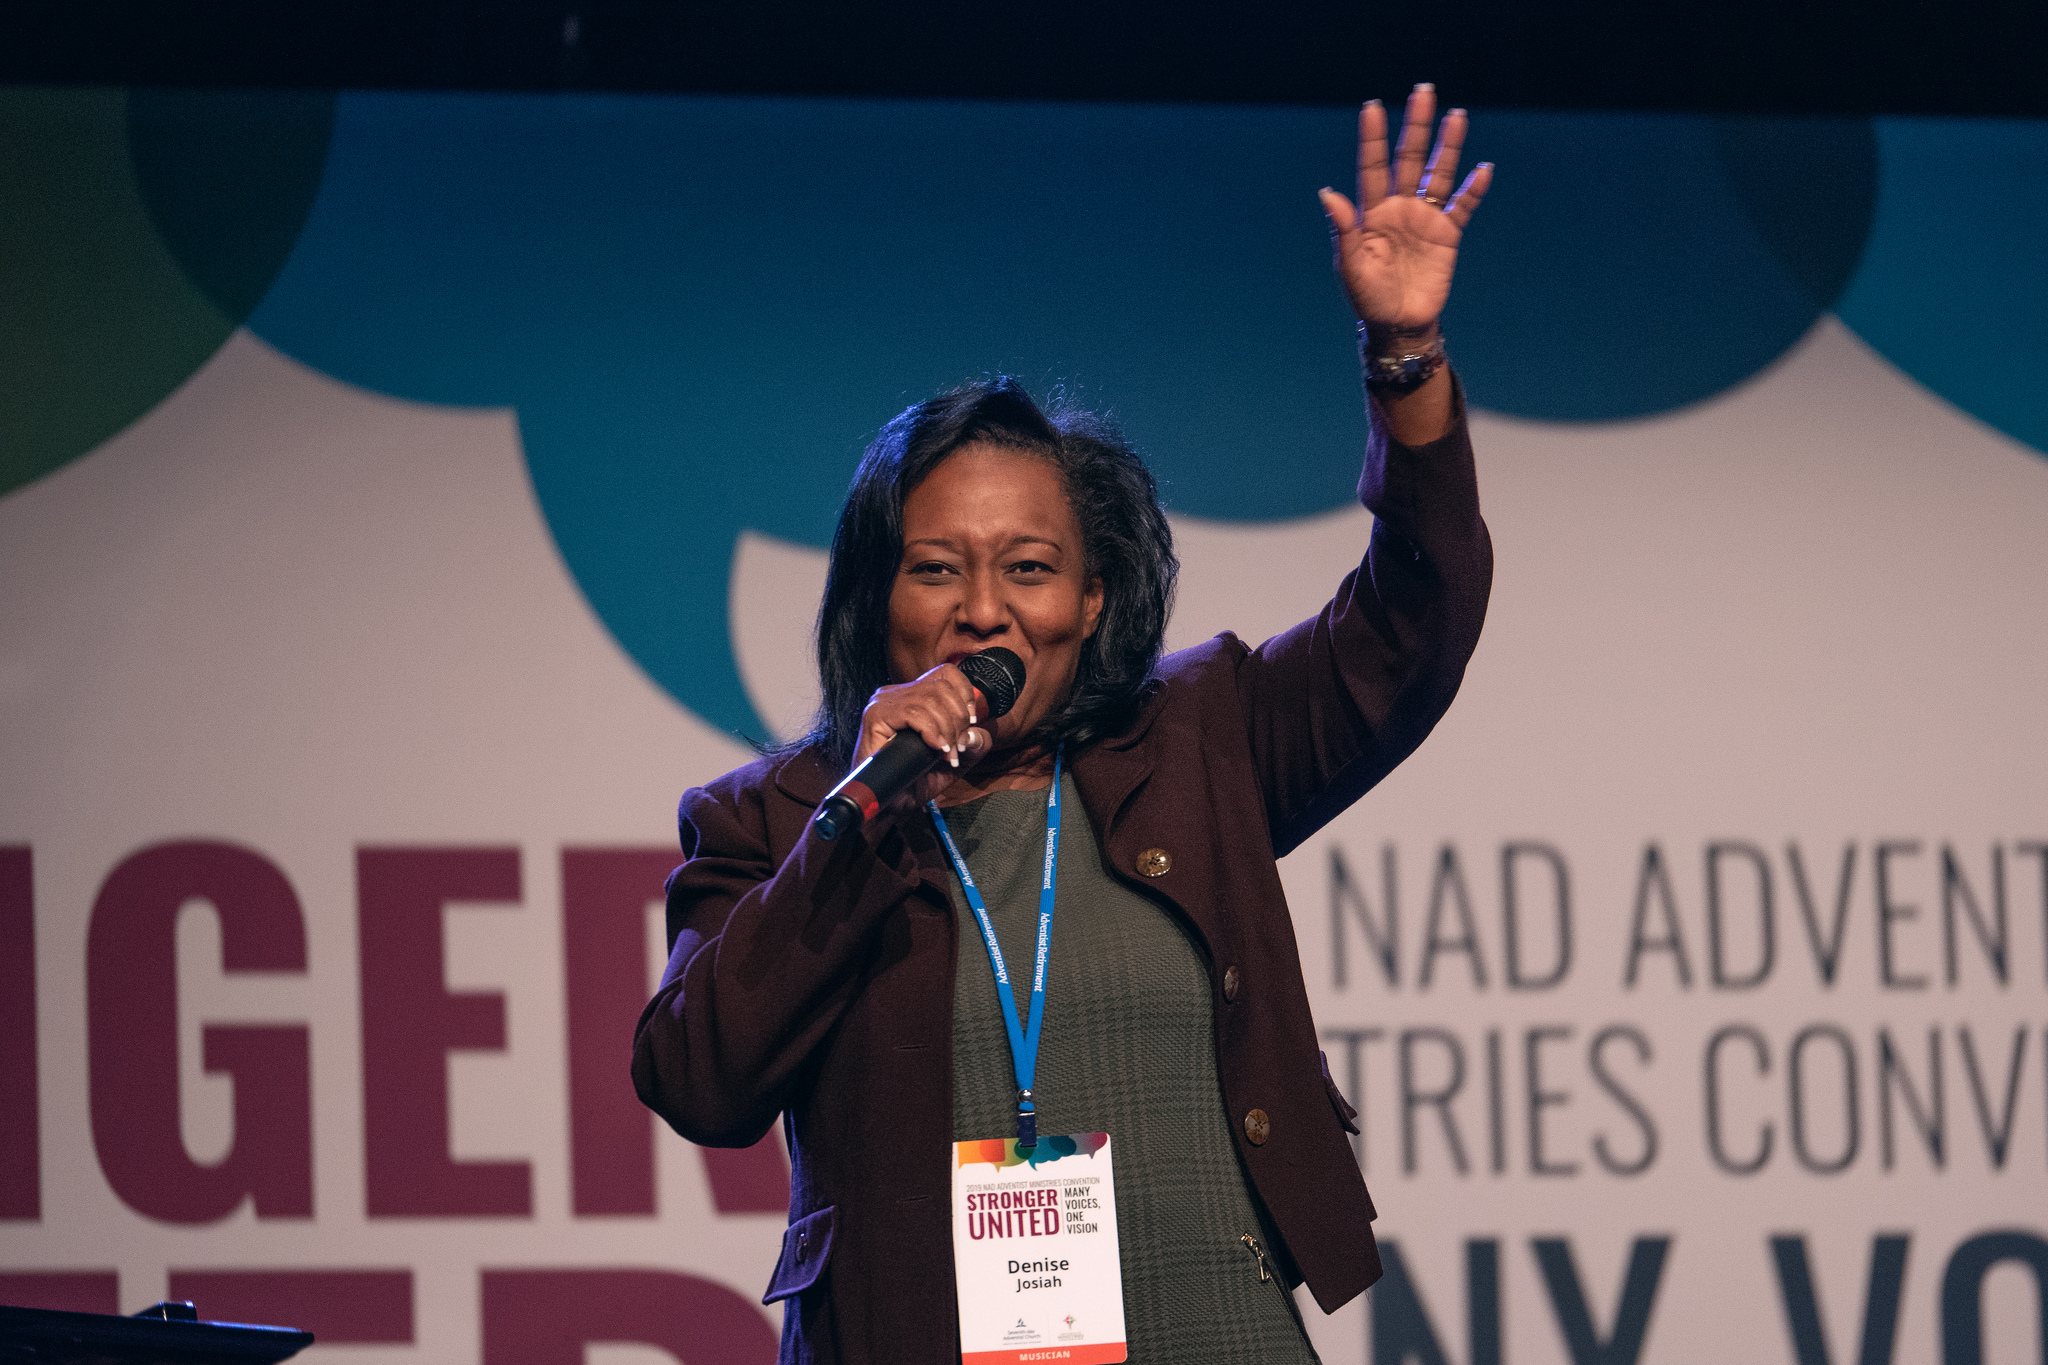 Denise Josiah sings during the 2019 AMC in Albuquerque. Photo by Pieter Damsteegt